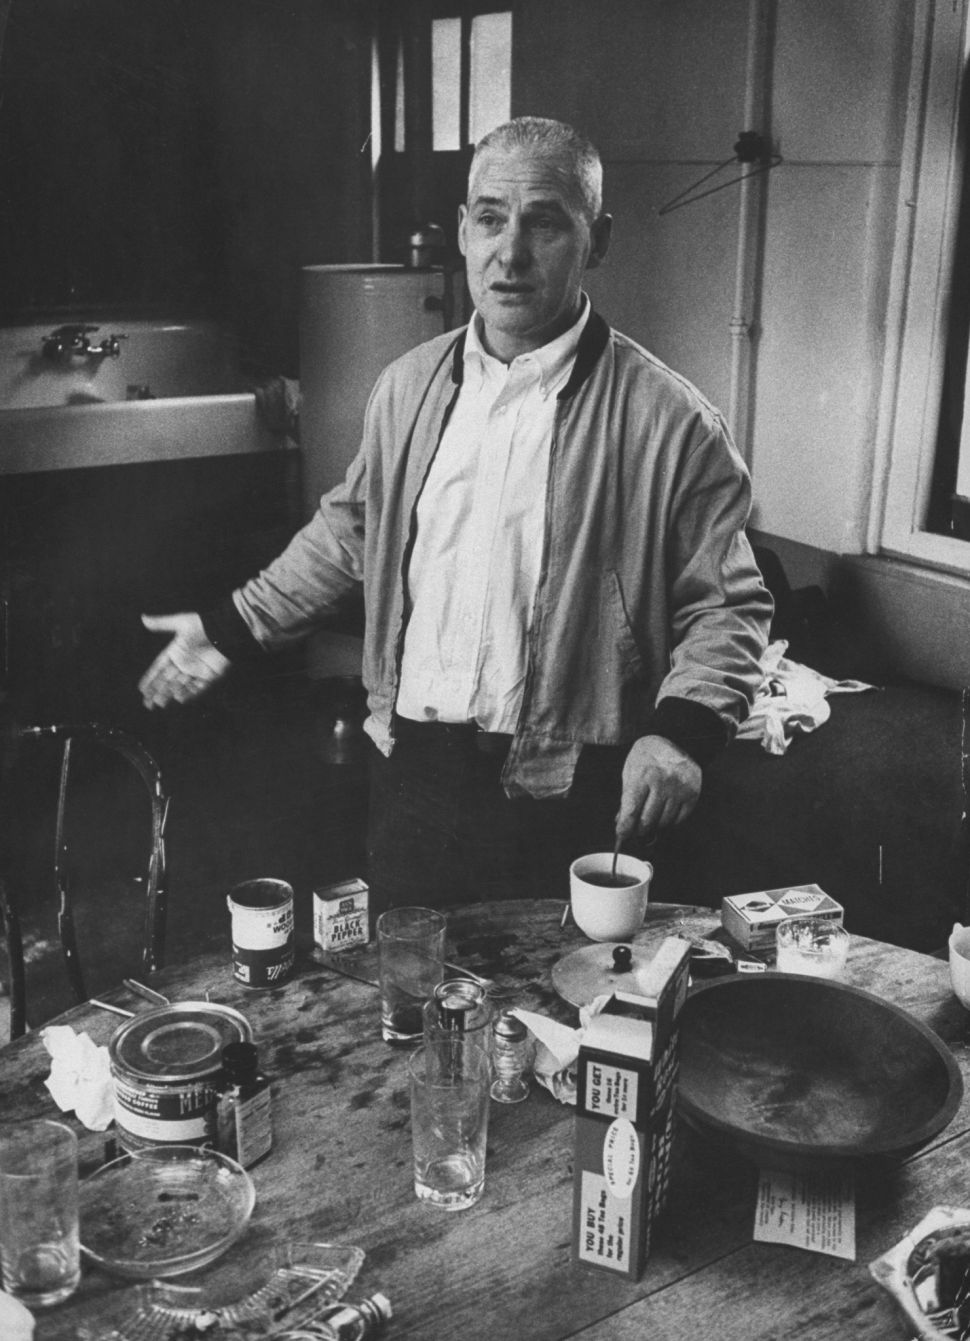 Dalí on de Kooning: 'The Greatest Painter of America'